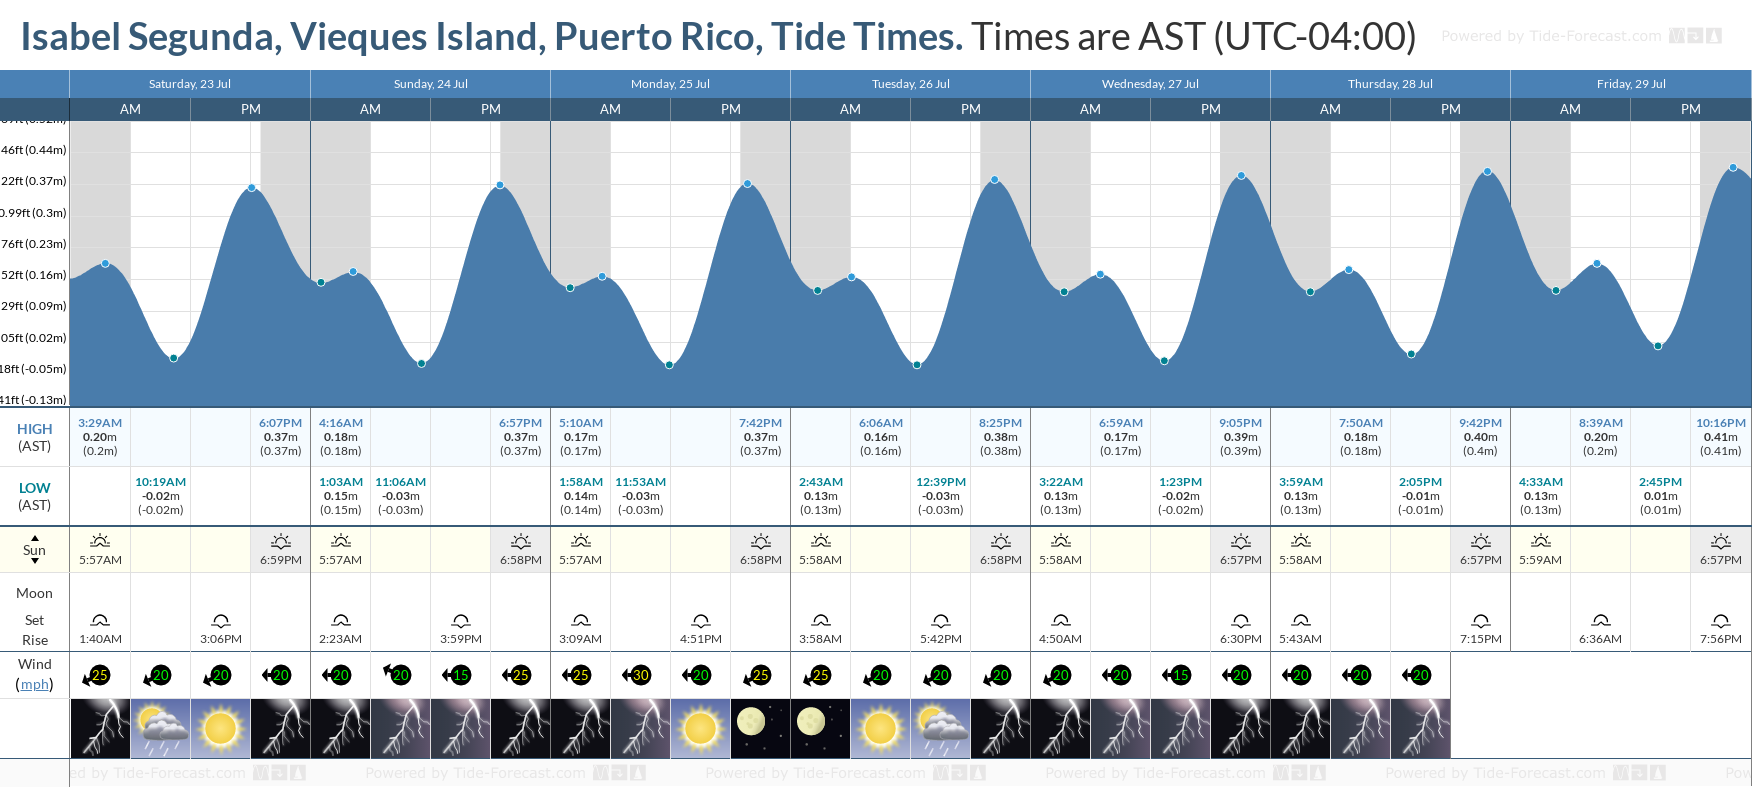 Isabel Segunda, Vieques Island, Puerto Rico Tide Chart including high and low tide tide times for the next 7 days